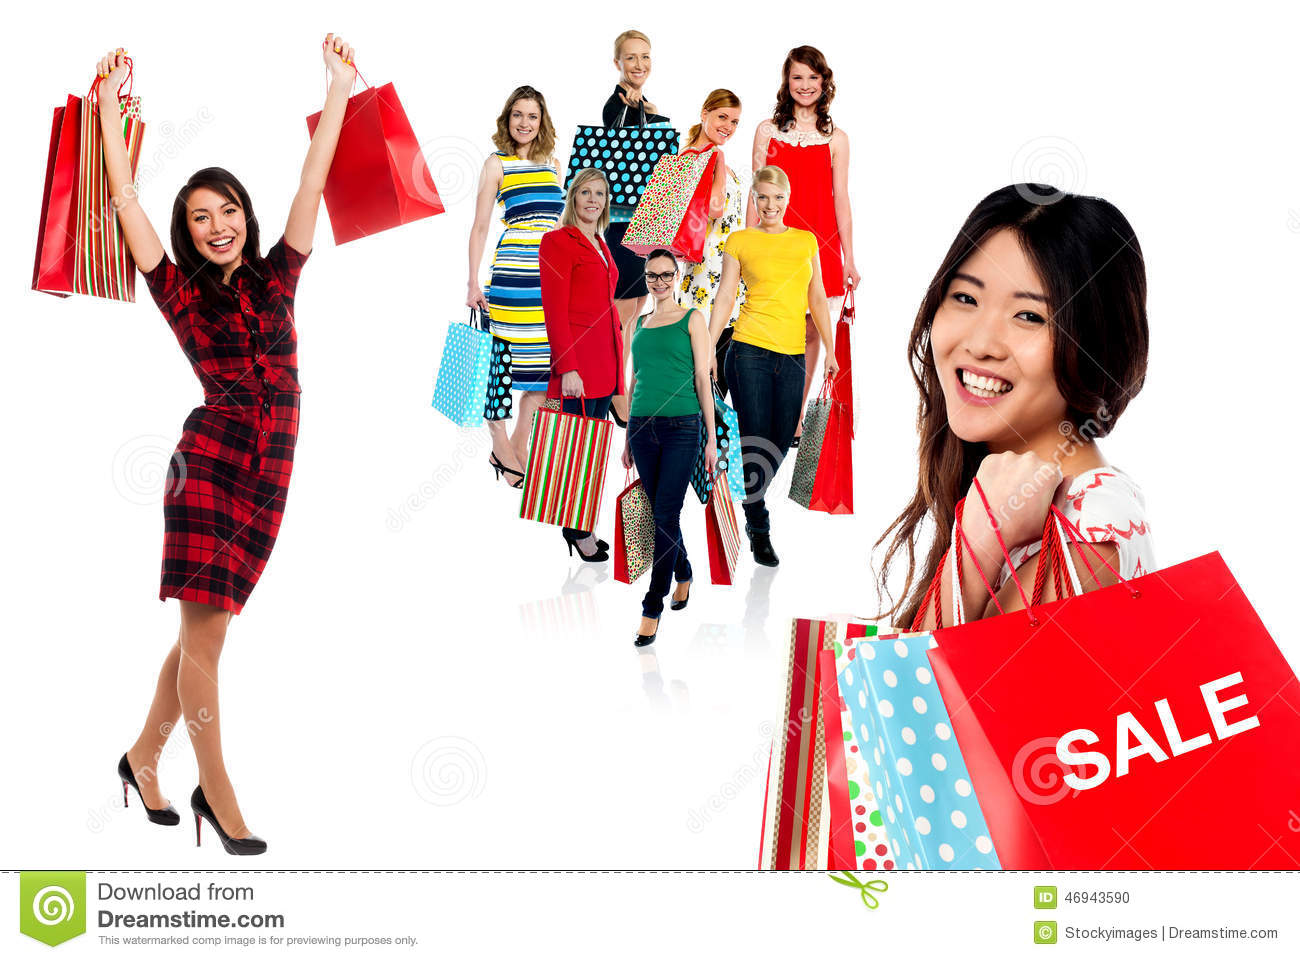 We have a great time shopping !